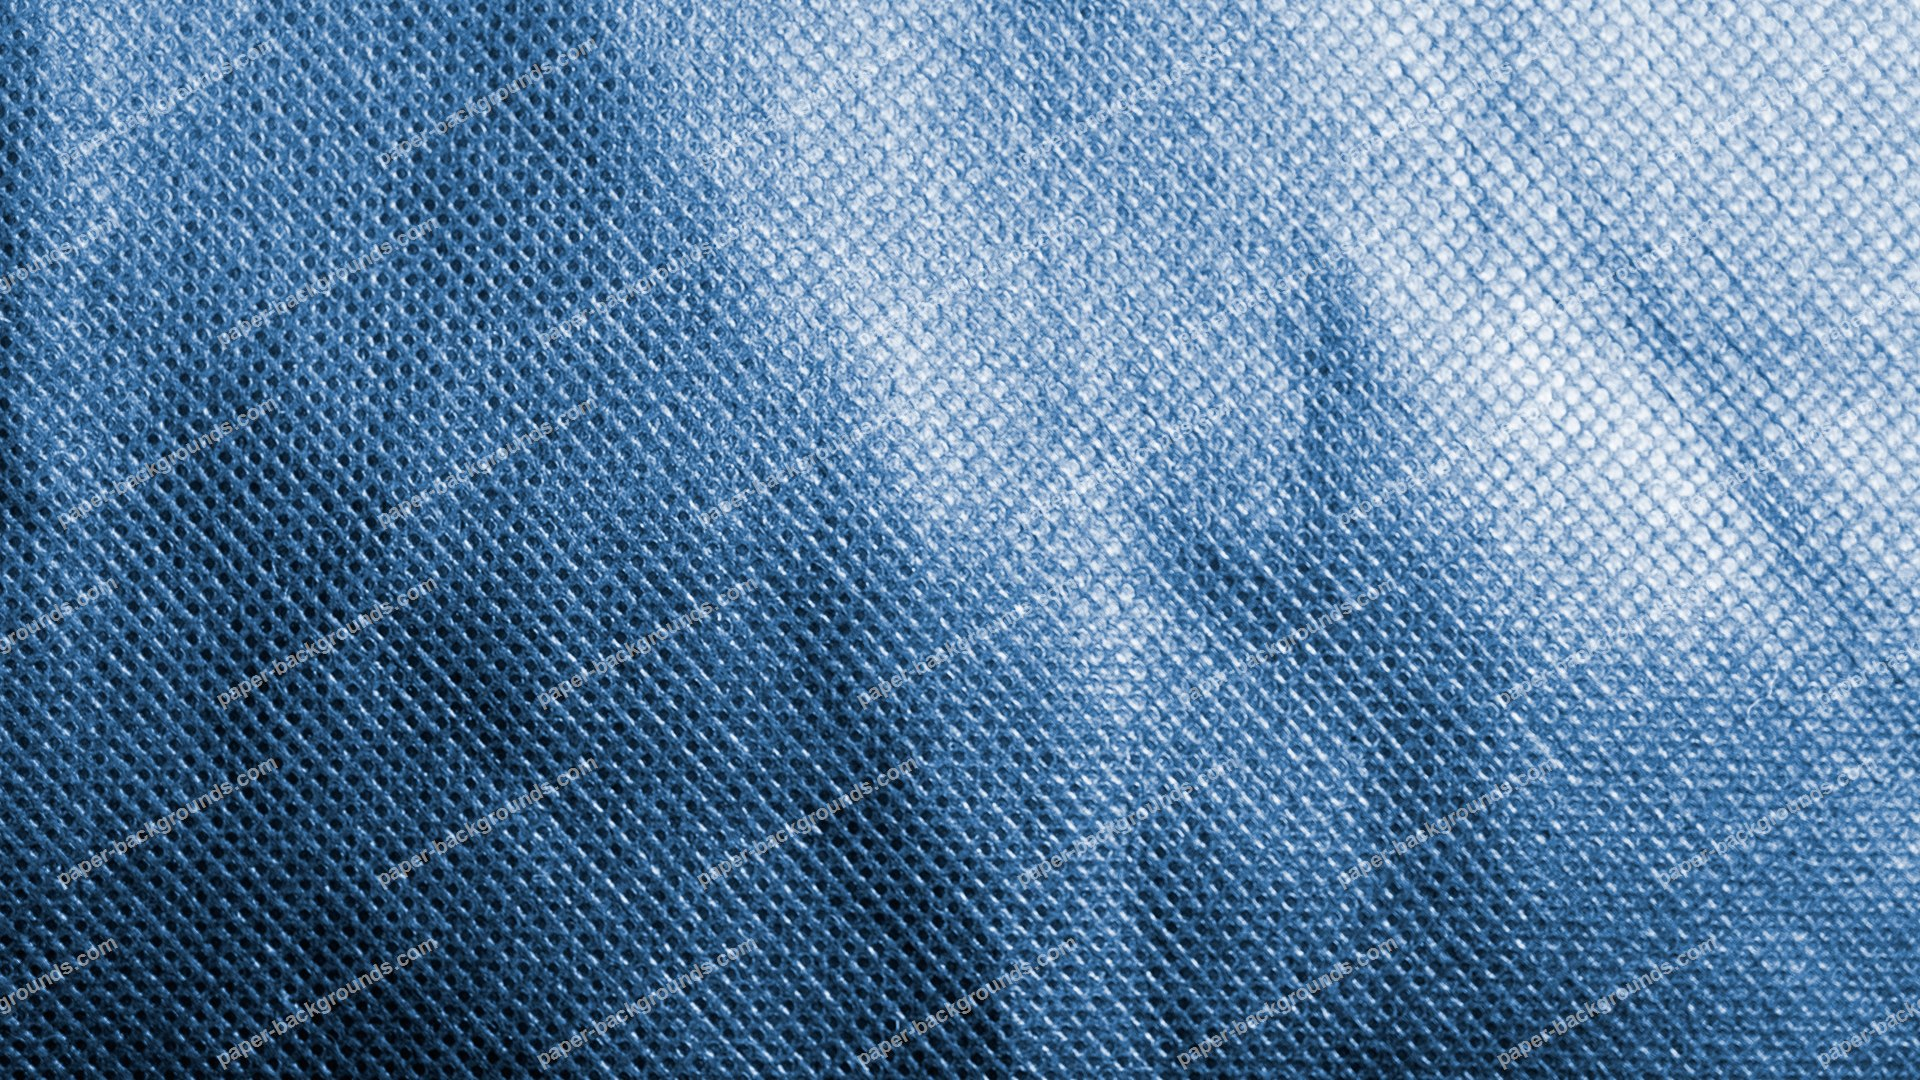 Blue Fabric Material With Pattern HD 1920 x 1080p